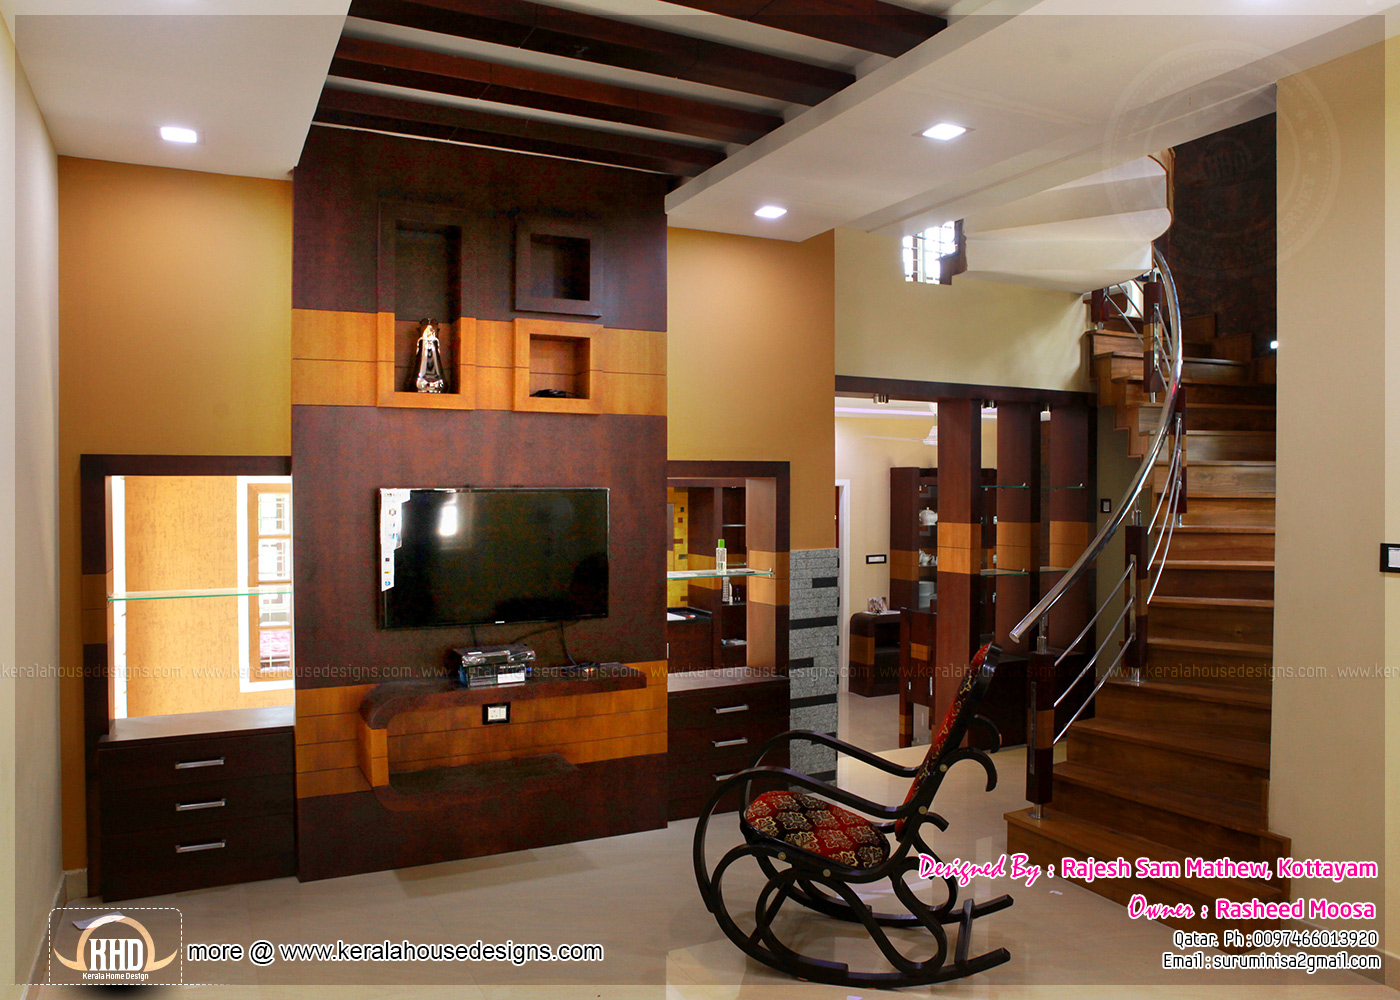 Kerala home design interior bedroom -  Interior Living Room